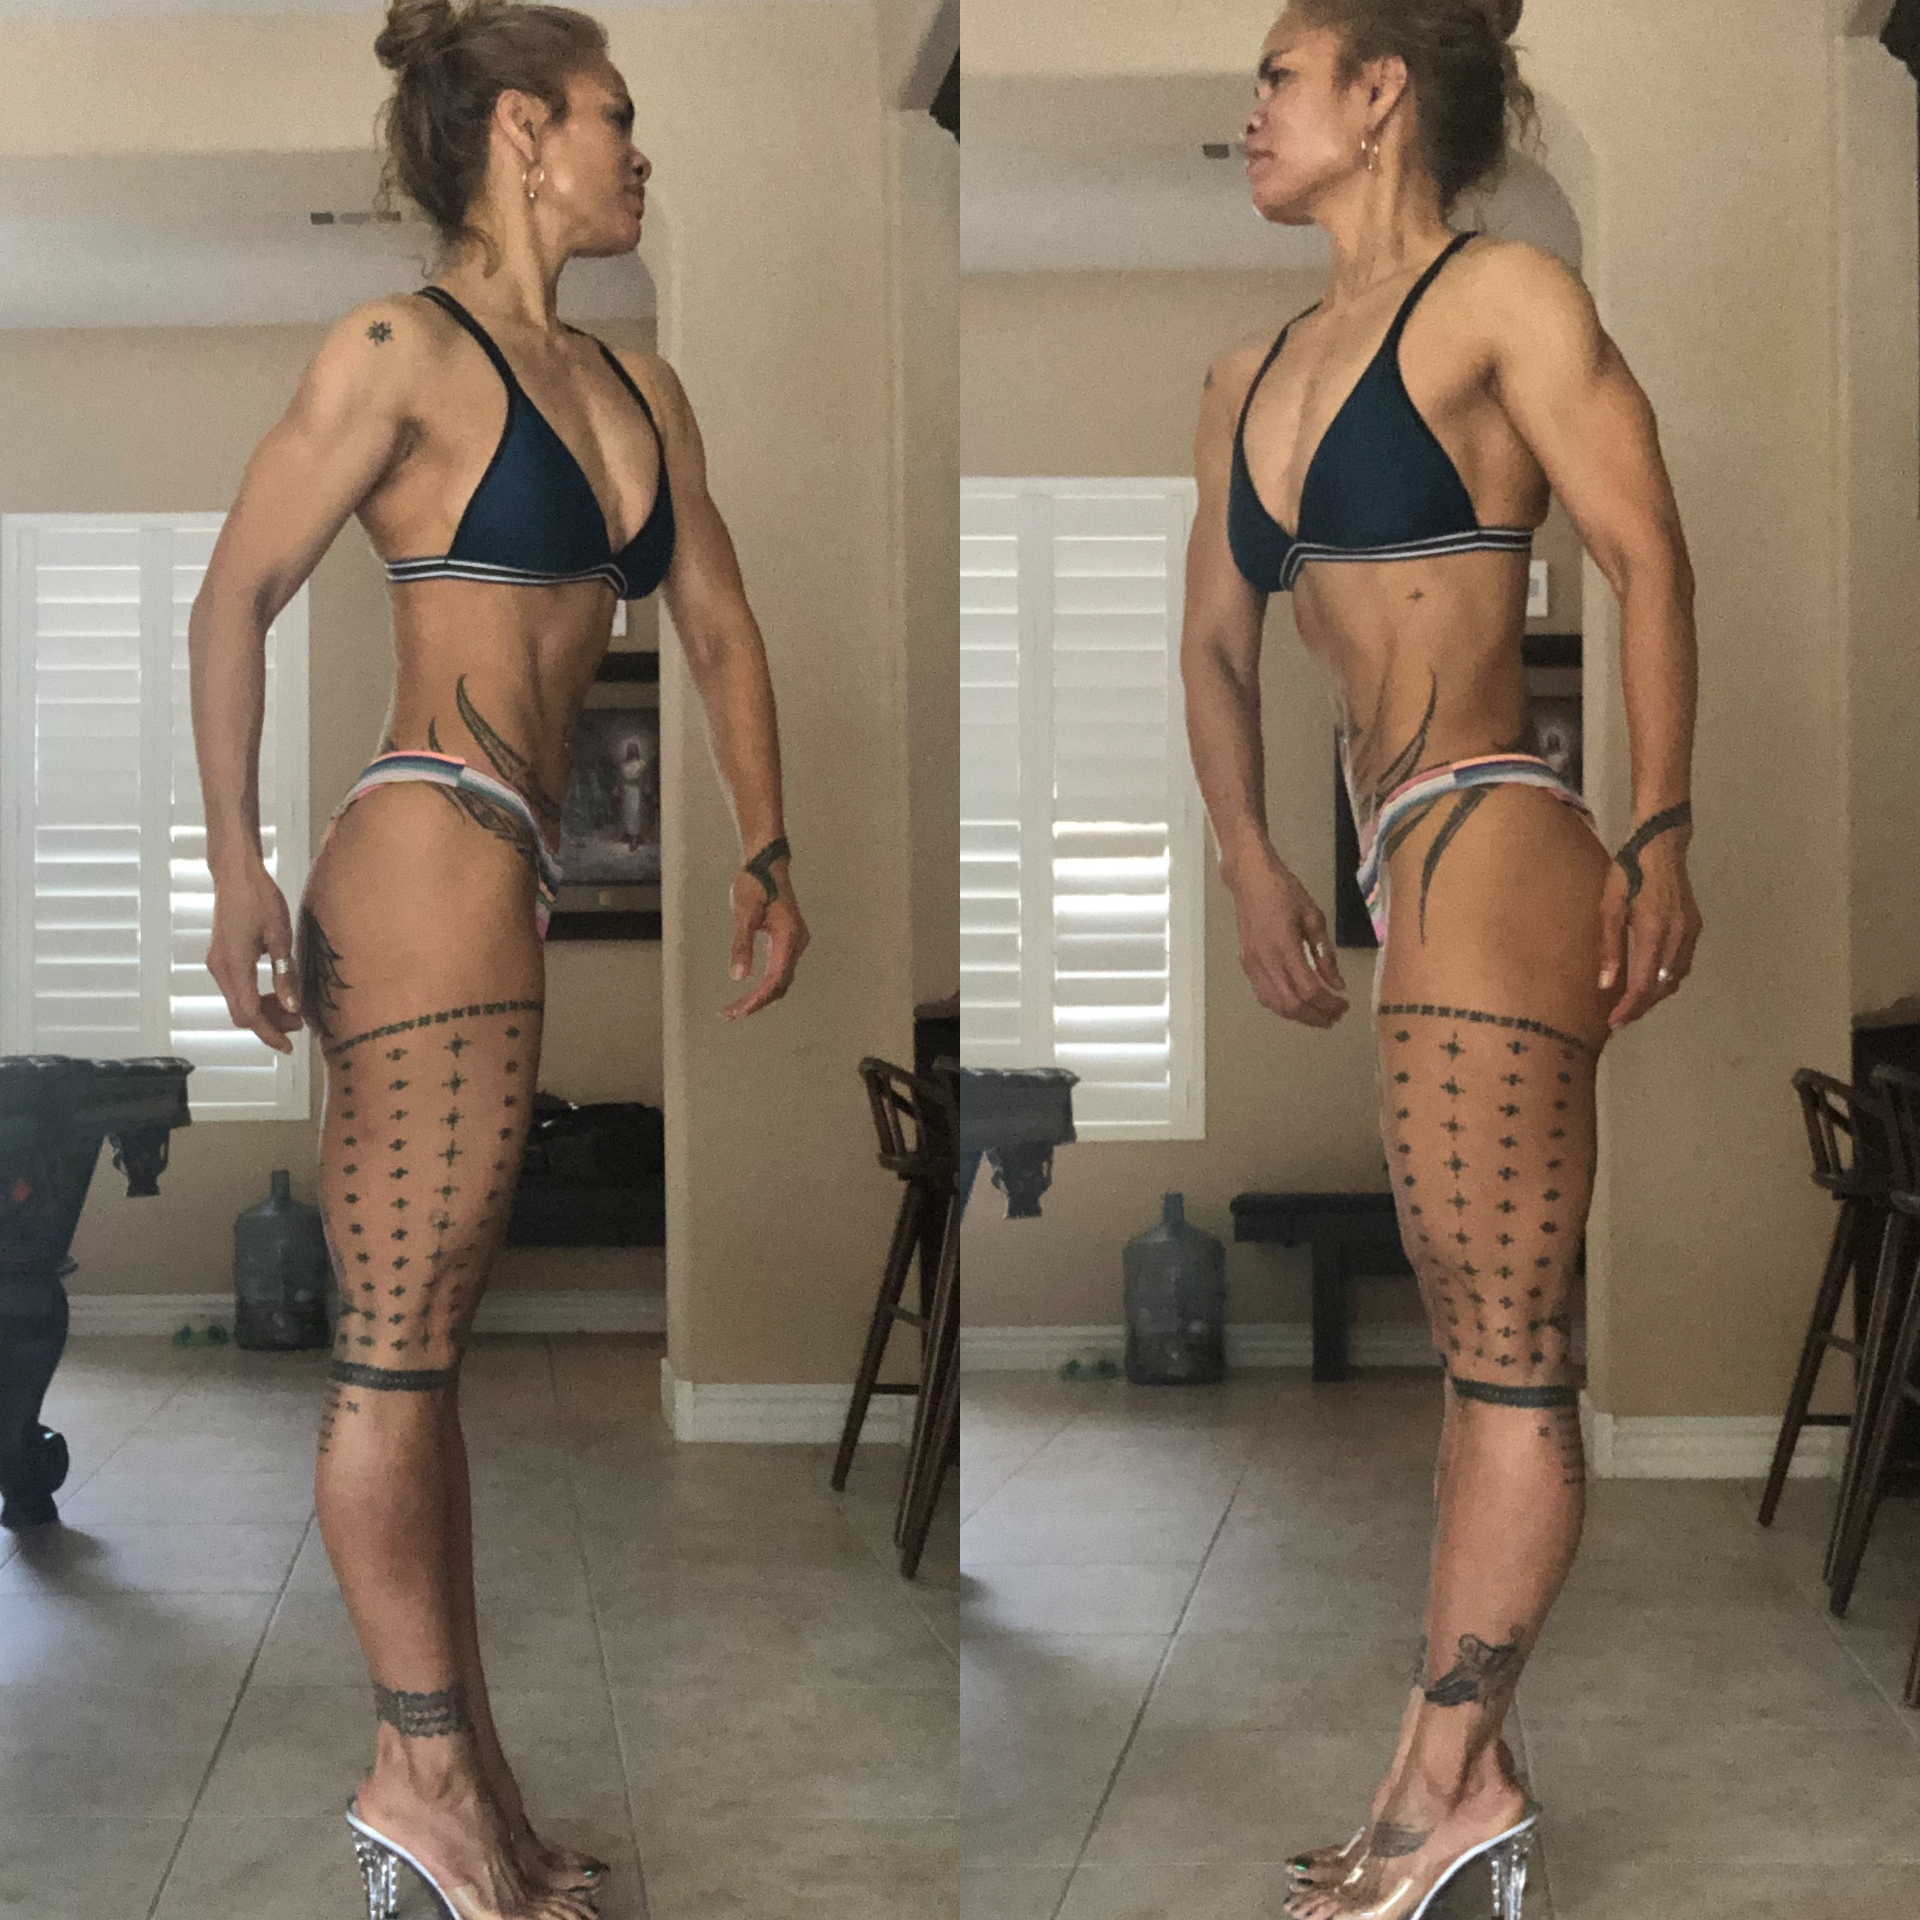 Wellness and Figure Competitors Contest Prep